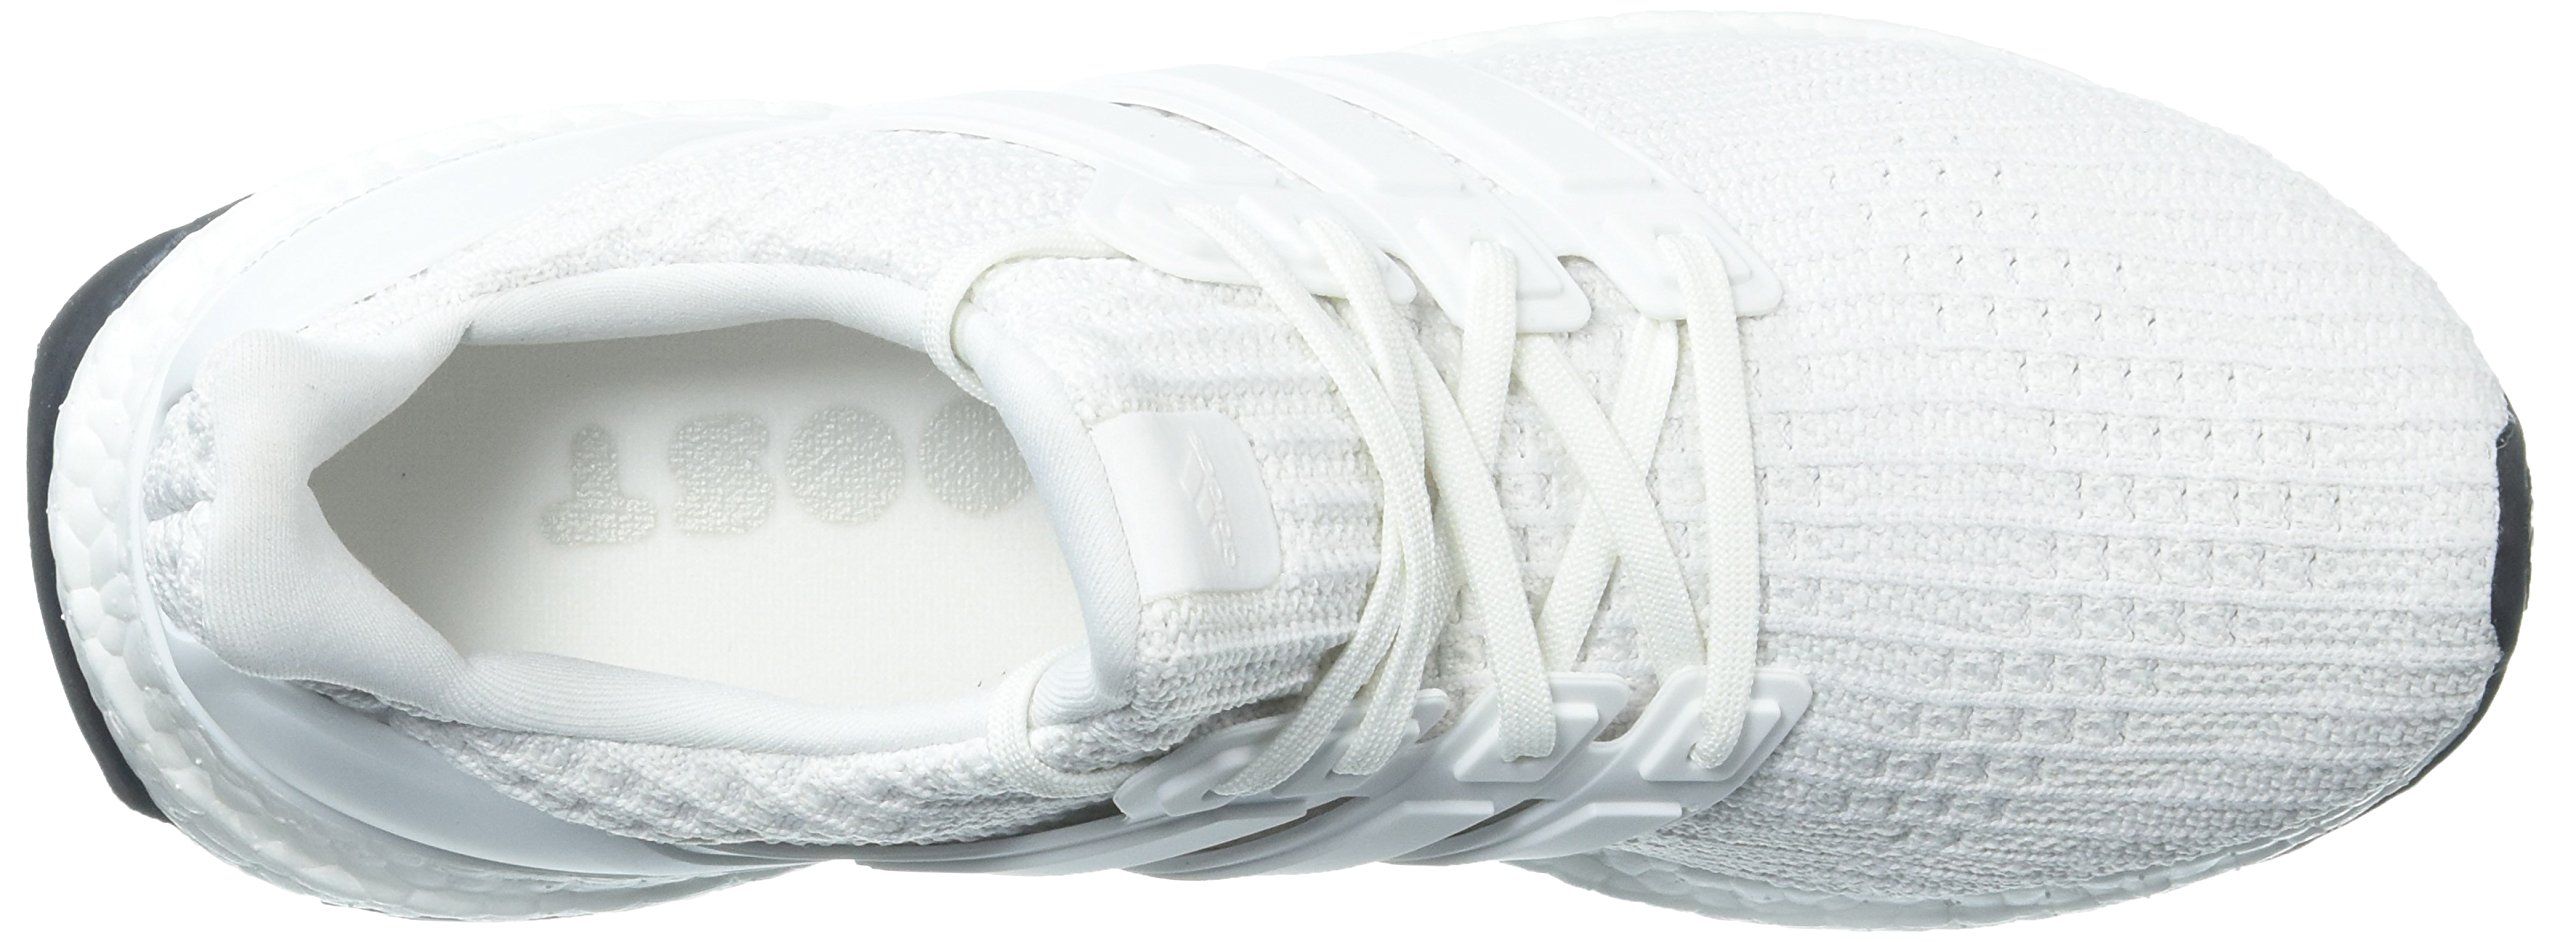 adidas Men's Ultraboost Road Running Shoe, White/White/White, 6.5 M US by adidas (Image #8)